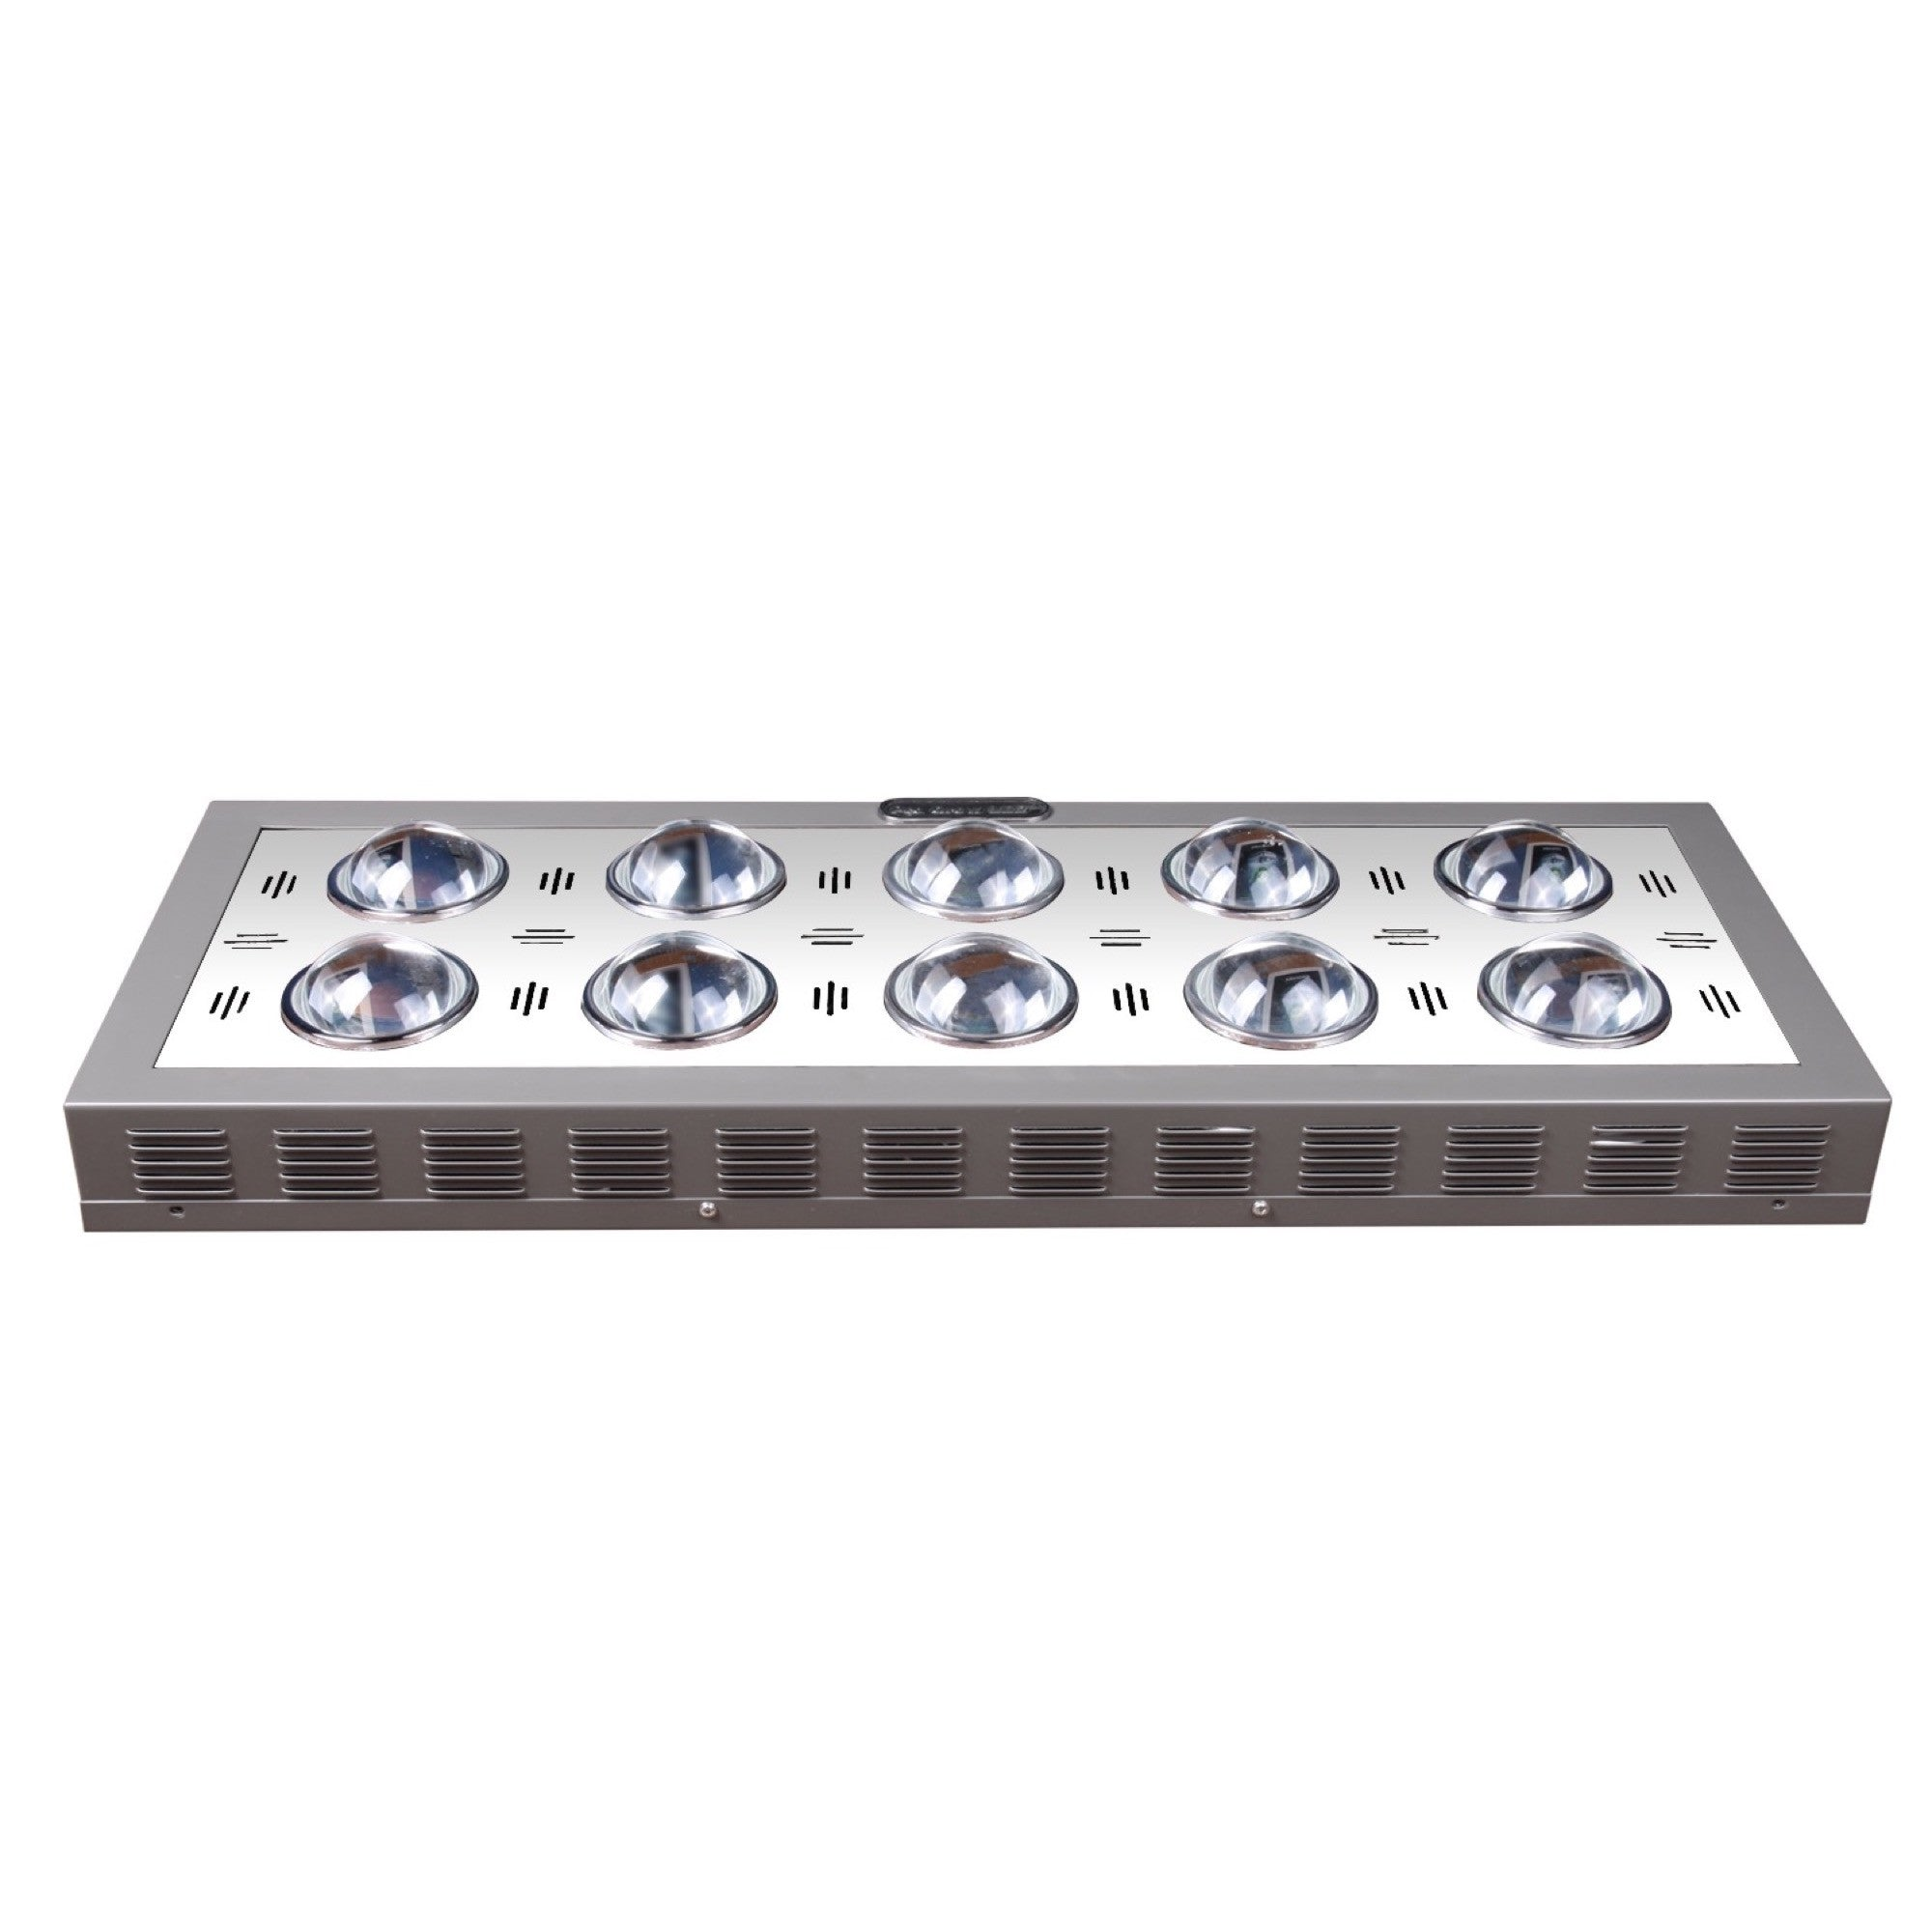 Hydroponics Hut Pro Grow 750 Cob Led Grow Light All